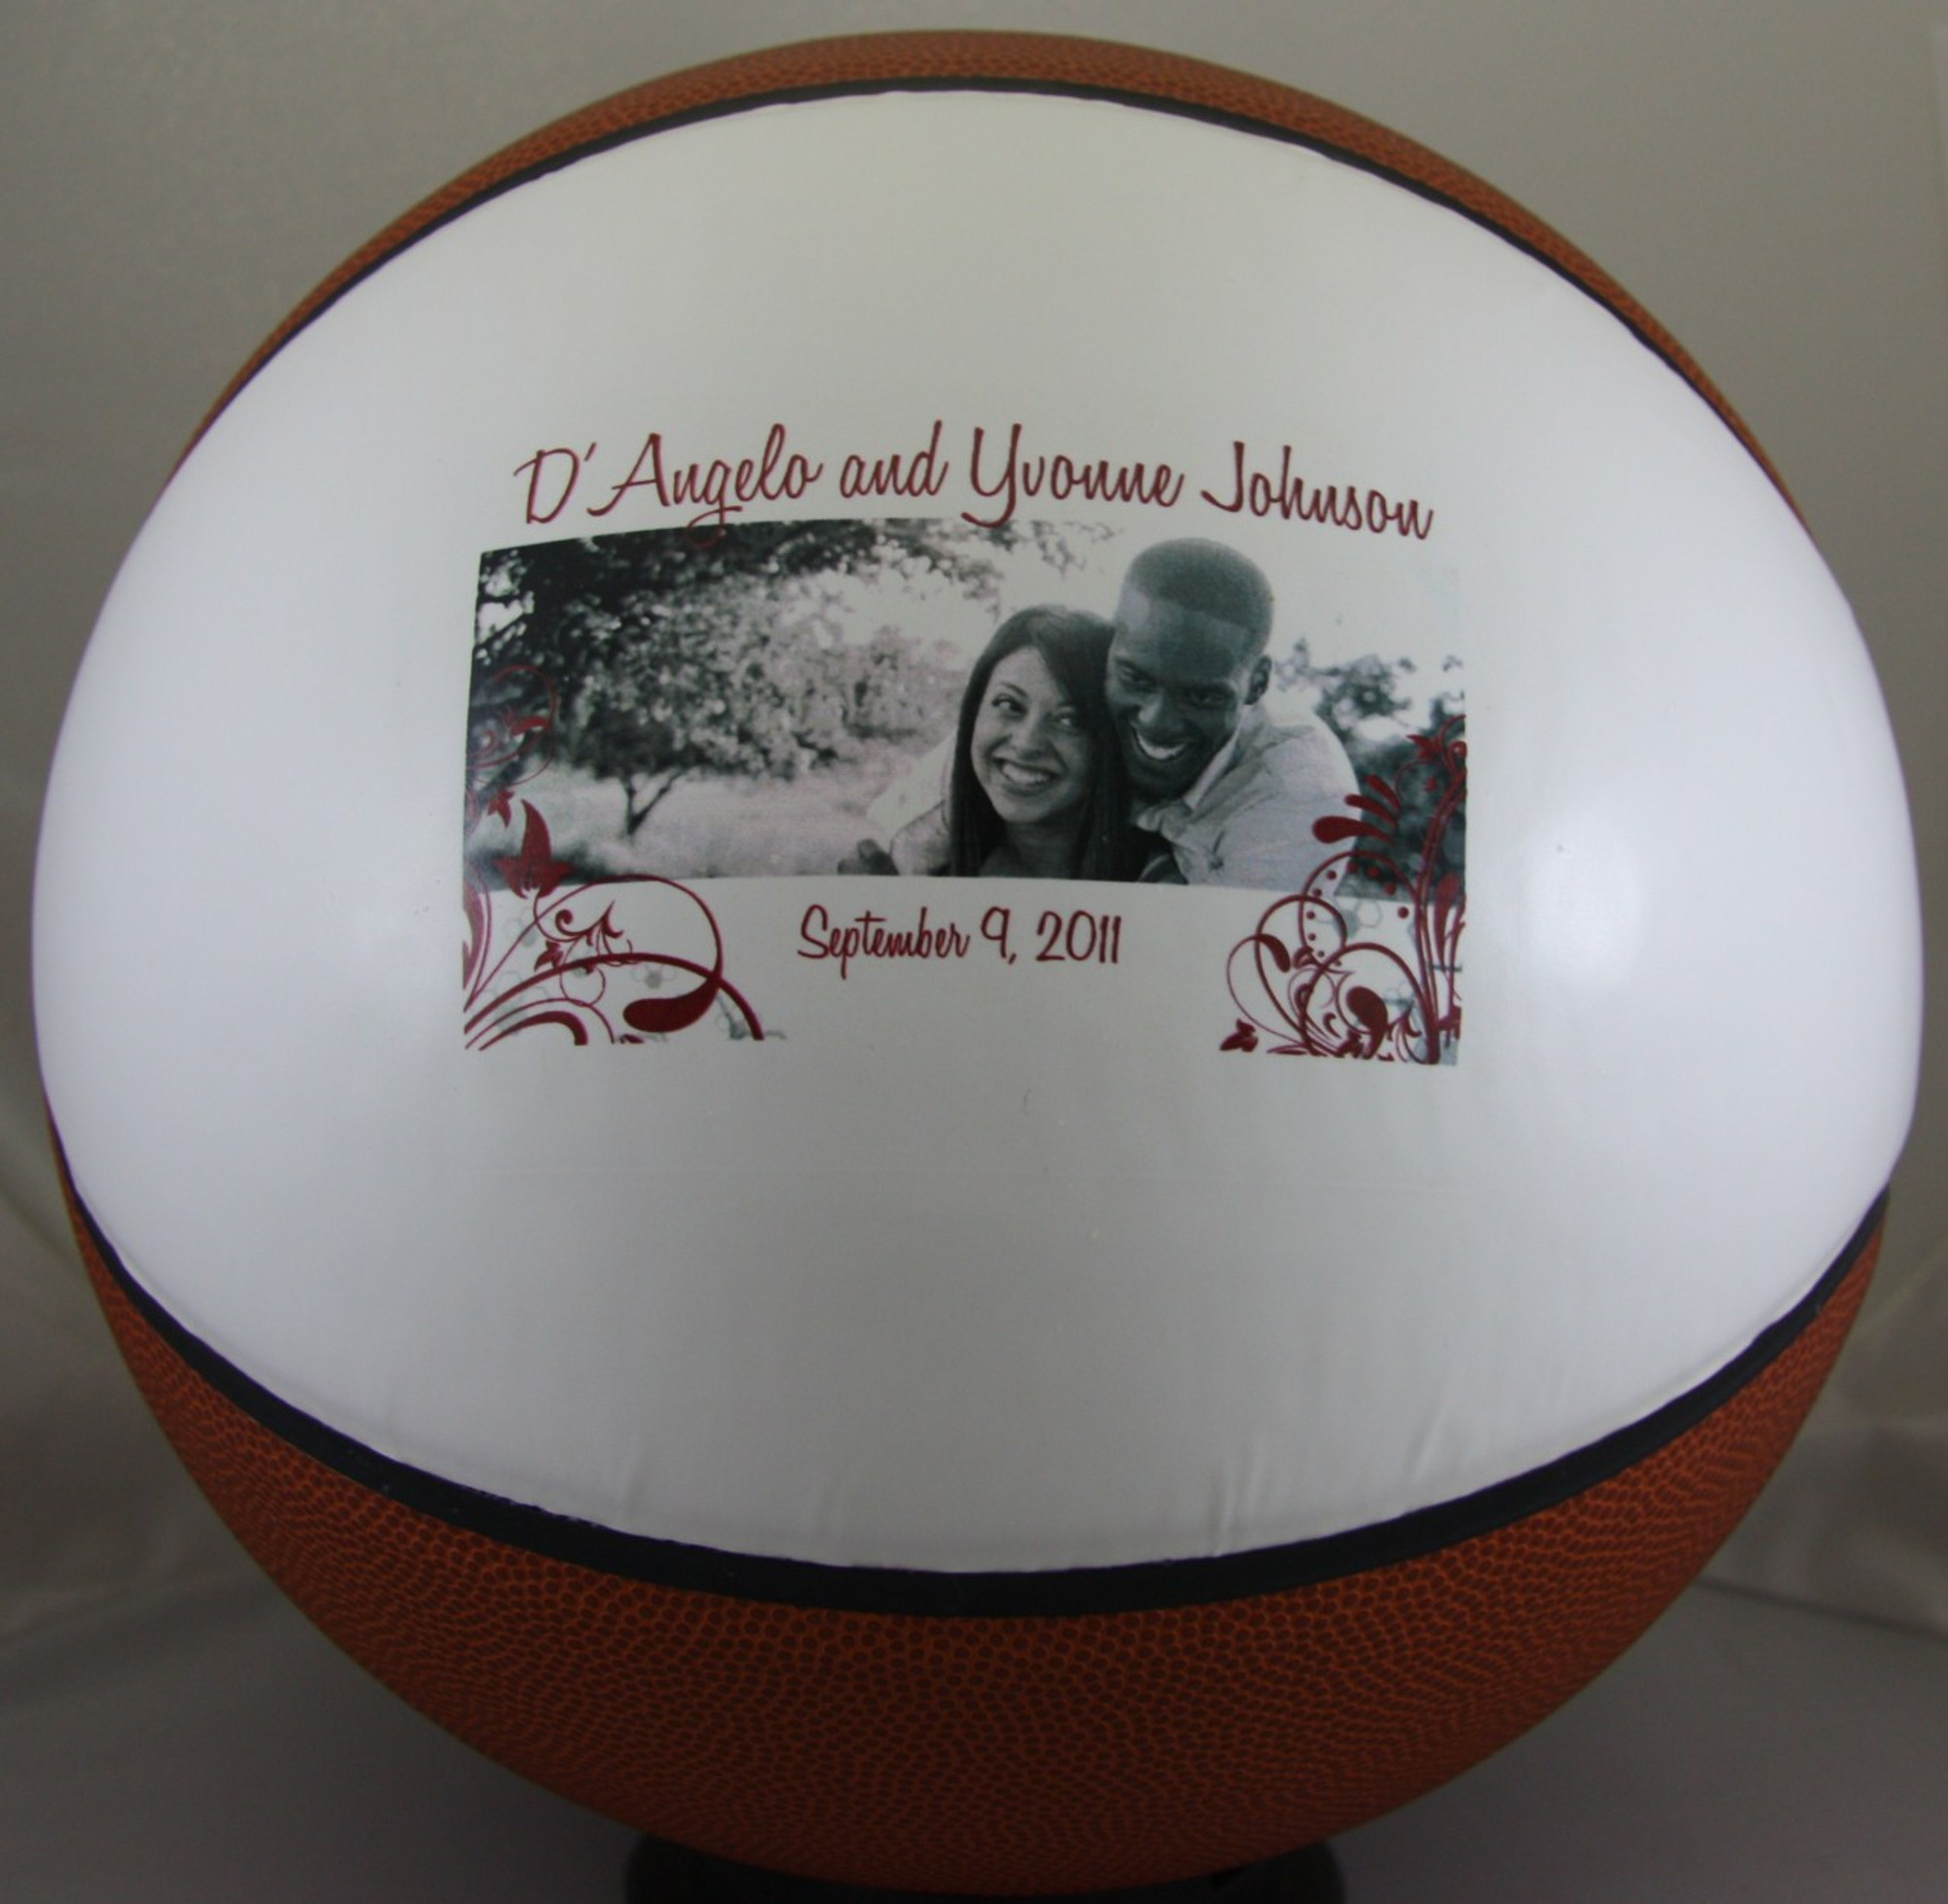 c1bb42515f3 Personalized Fullsize Basketball Full Size Basketball personalized for  anniversary gift.